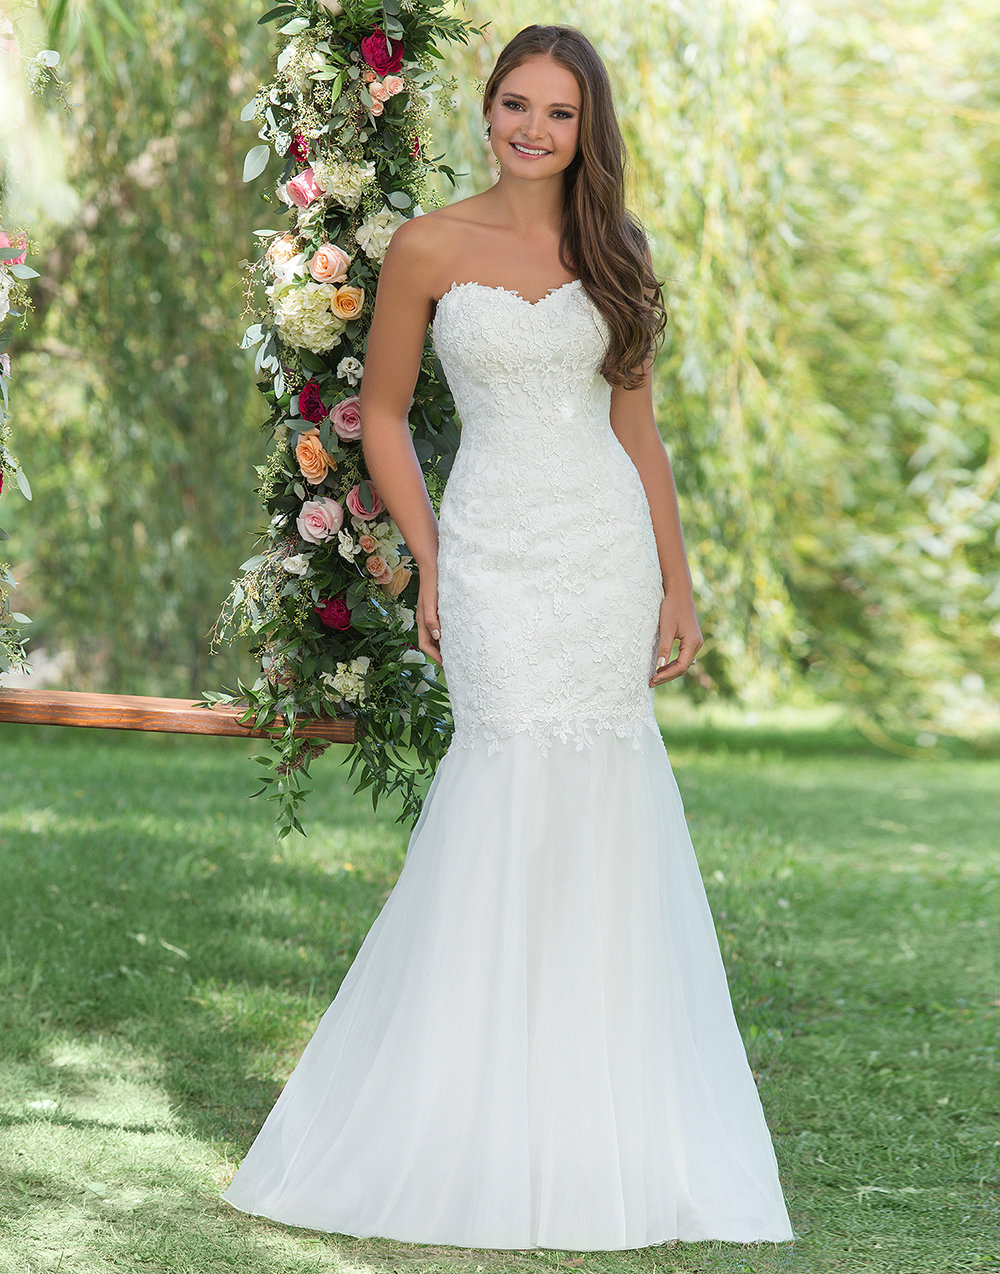 Sweetheart Gowns Beaded Lace and Organza Mermaid Gown | Wedding ...